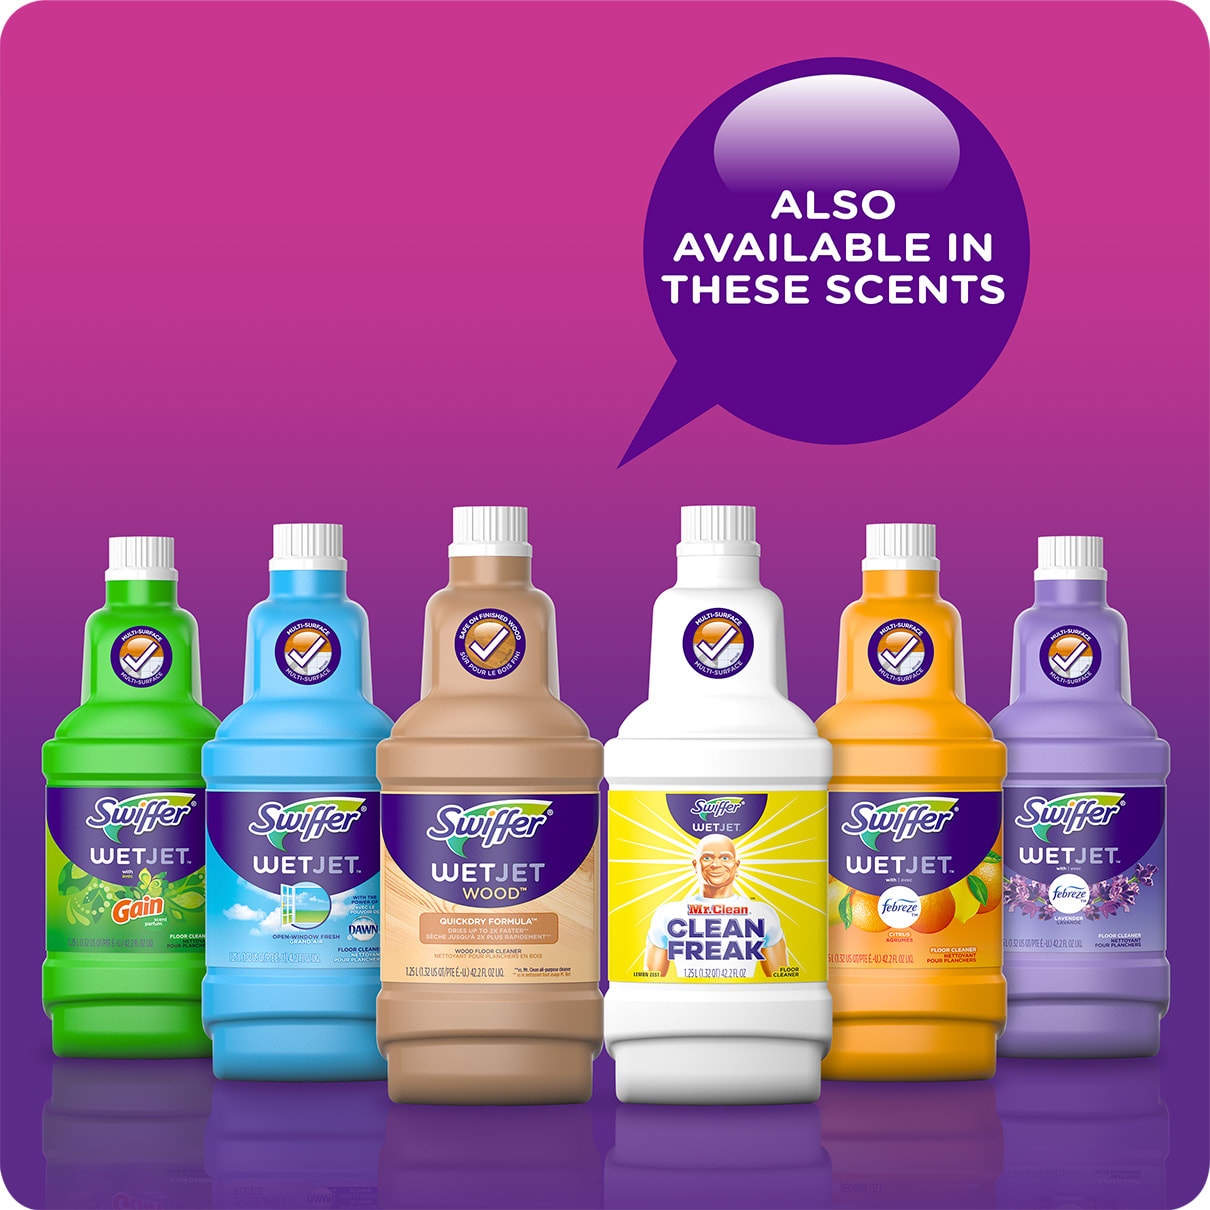 Swiffer WetJet Solution Also Available in These Scents